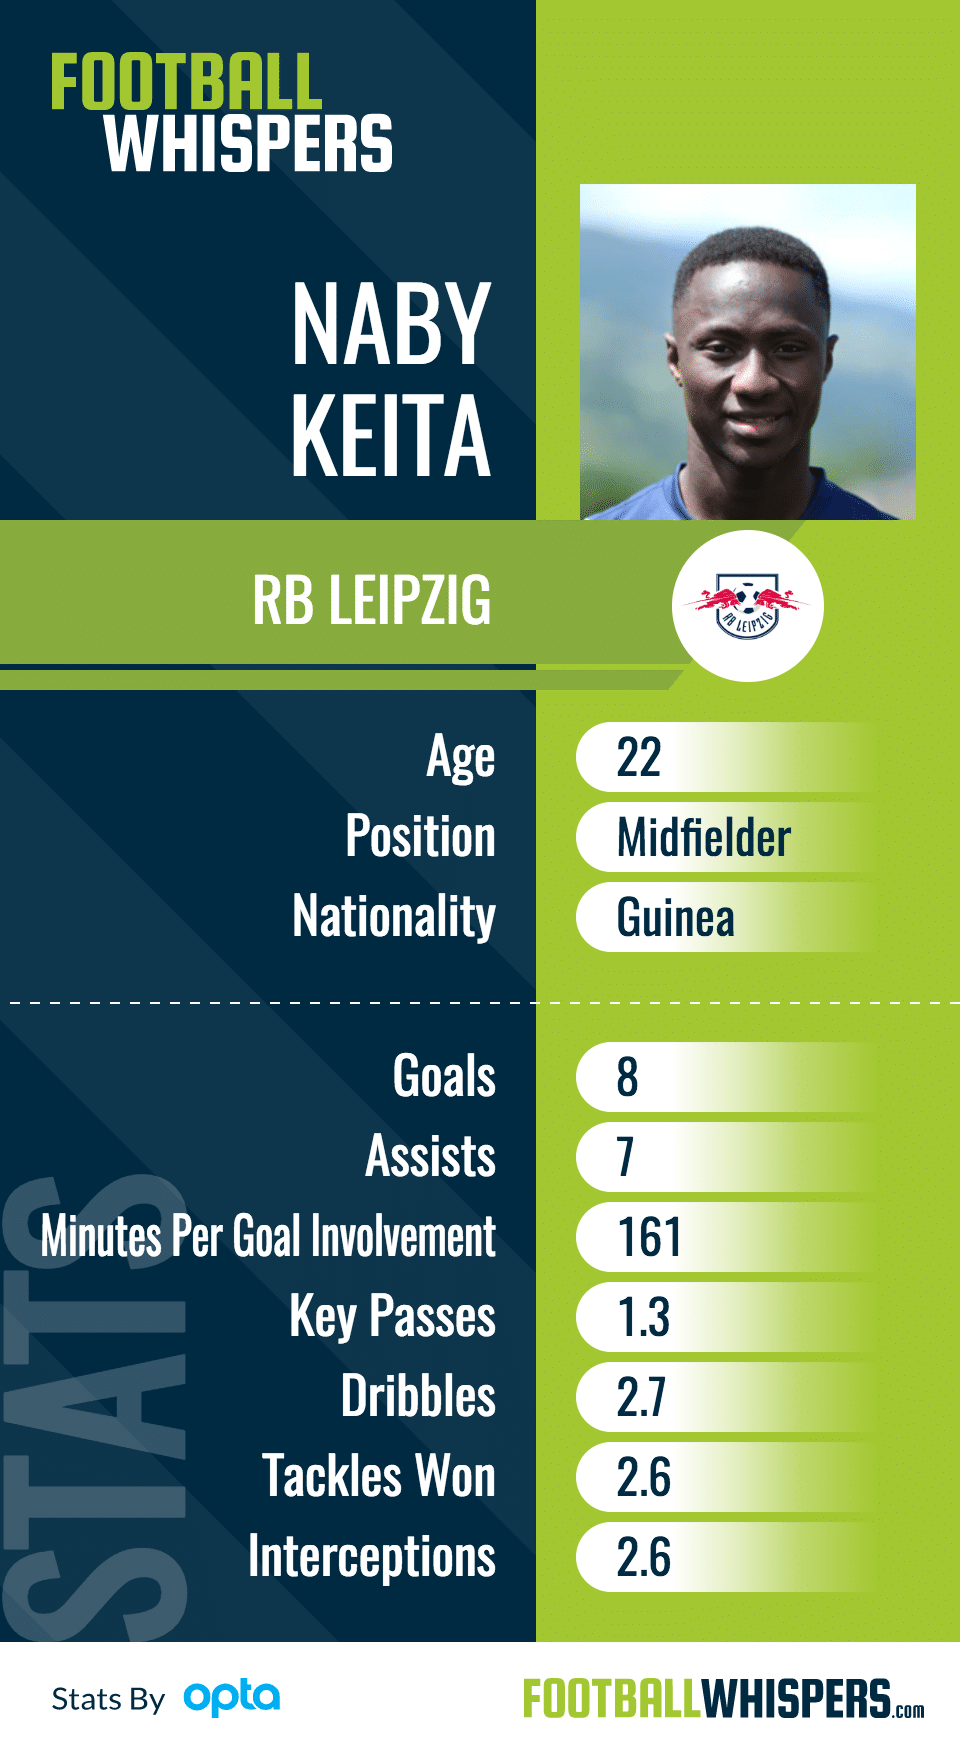 Who Makes Way For Keïta In The Liverpool Midfield?